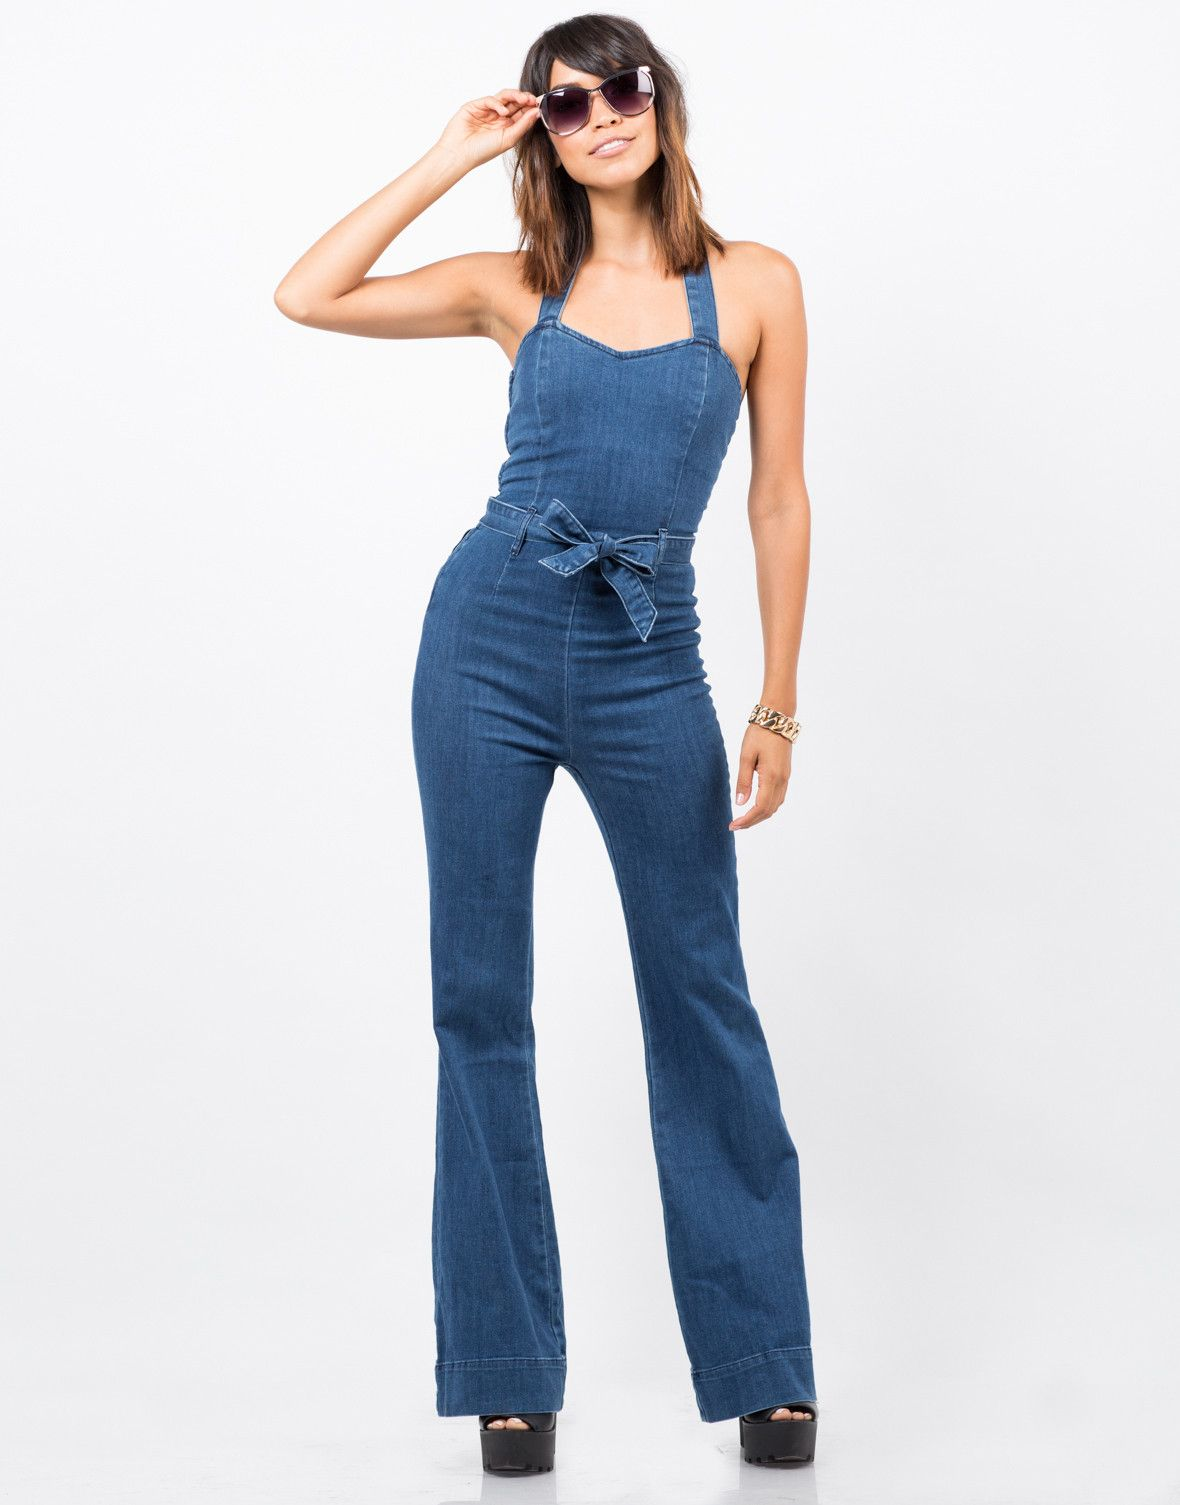 Flared Denim Jumpsuit | Blue, Denim jumpsuit and Flare